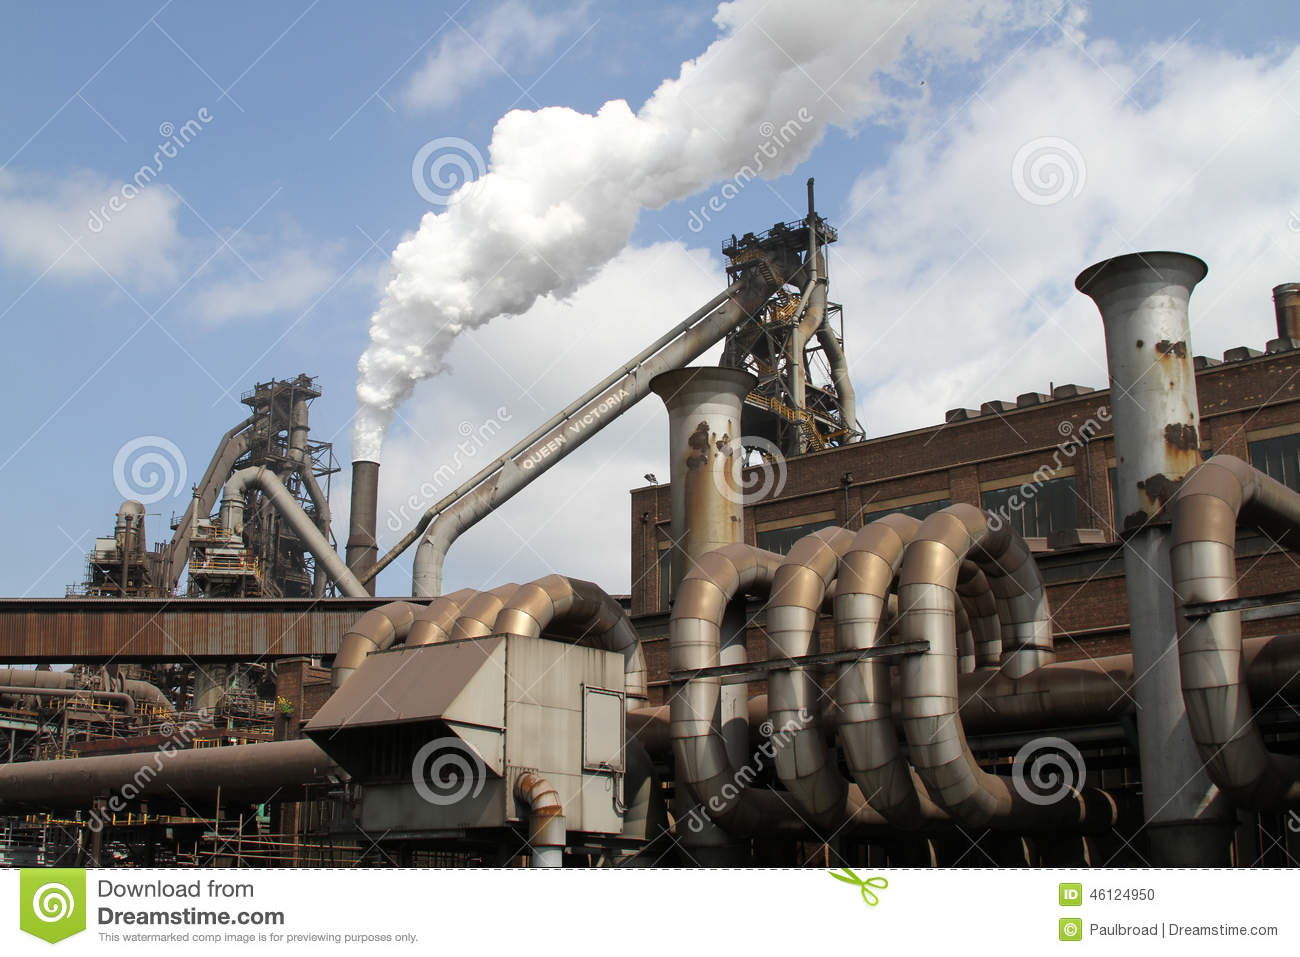 Blast Furnaces. stock photo. Image of heat, blast, steam - 46124950